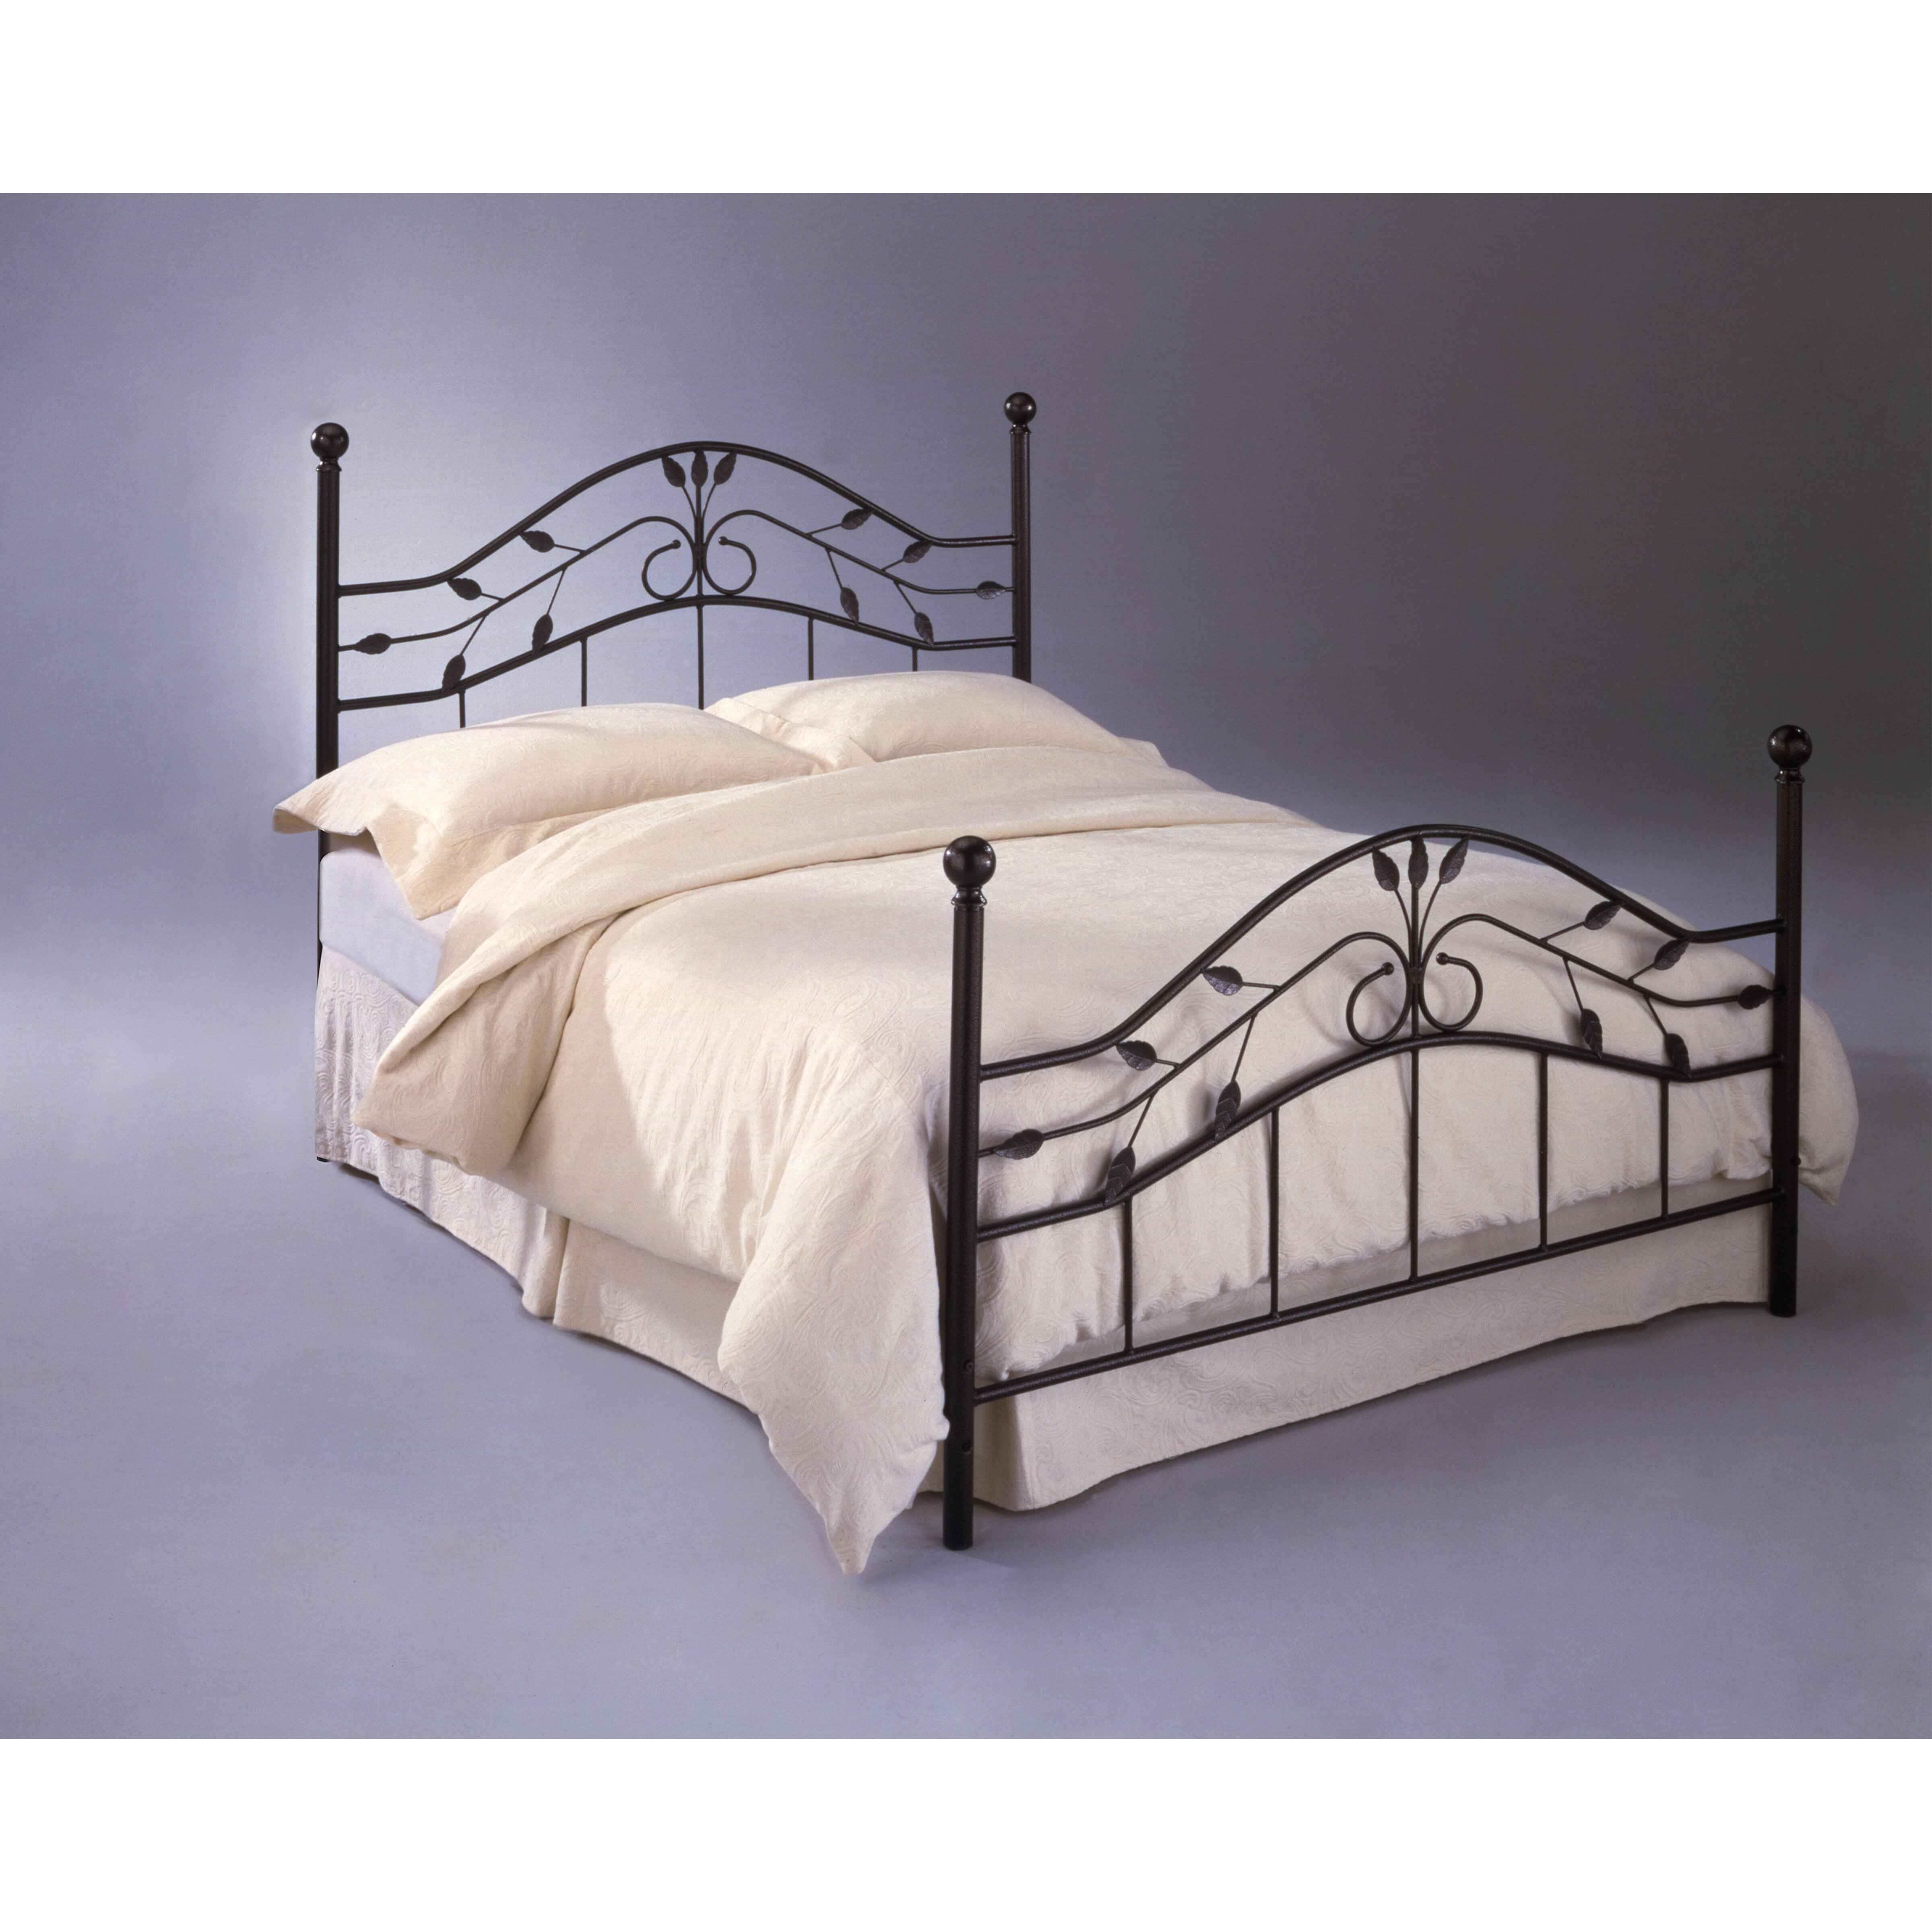 Fashion bed group sycamore metal headboard reviews wayfair Headboard with pictures